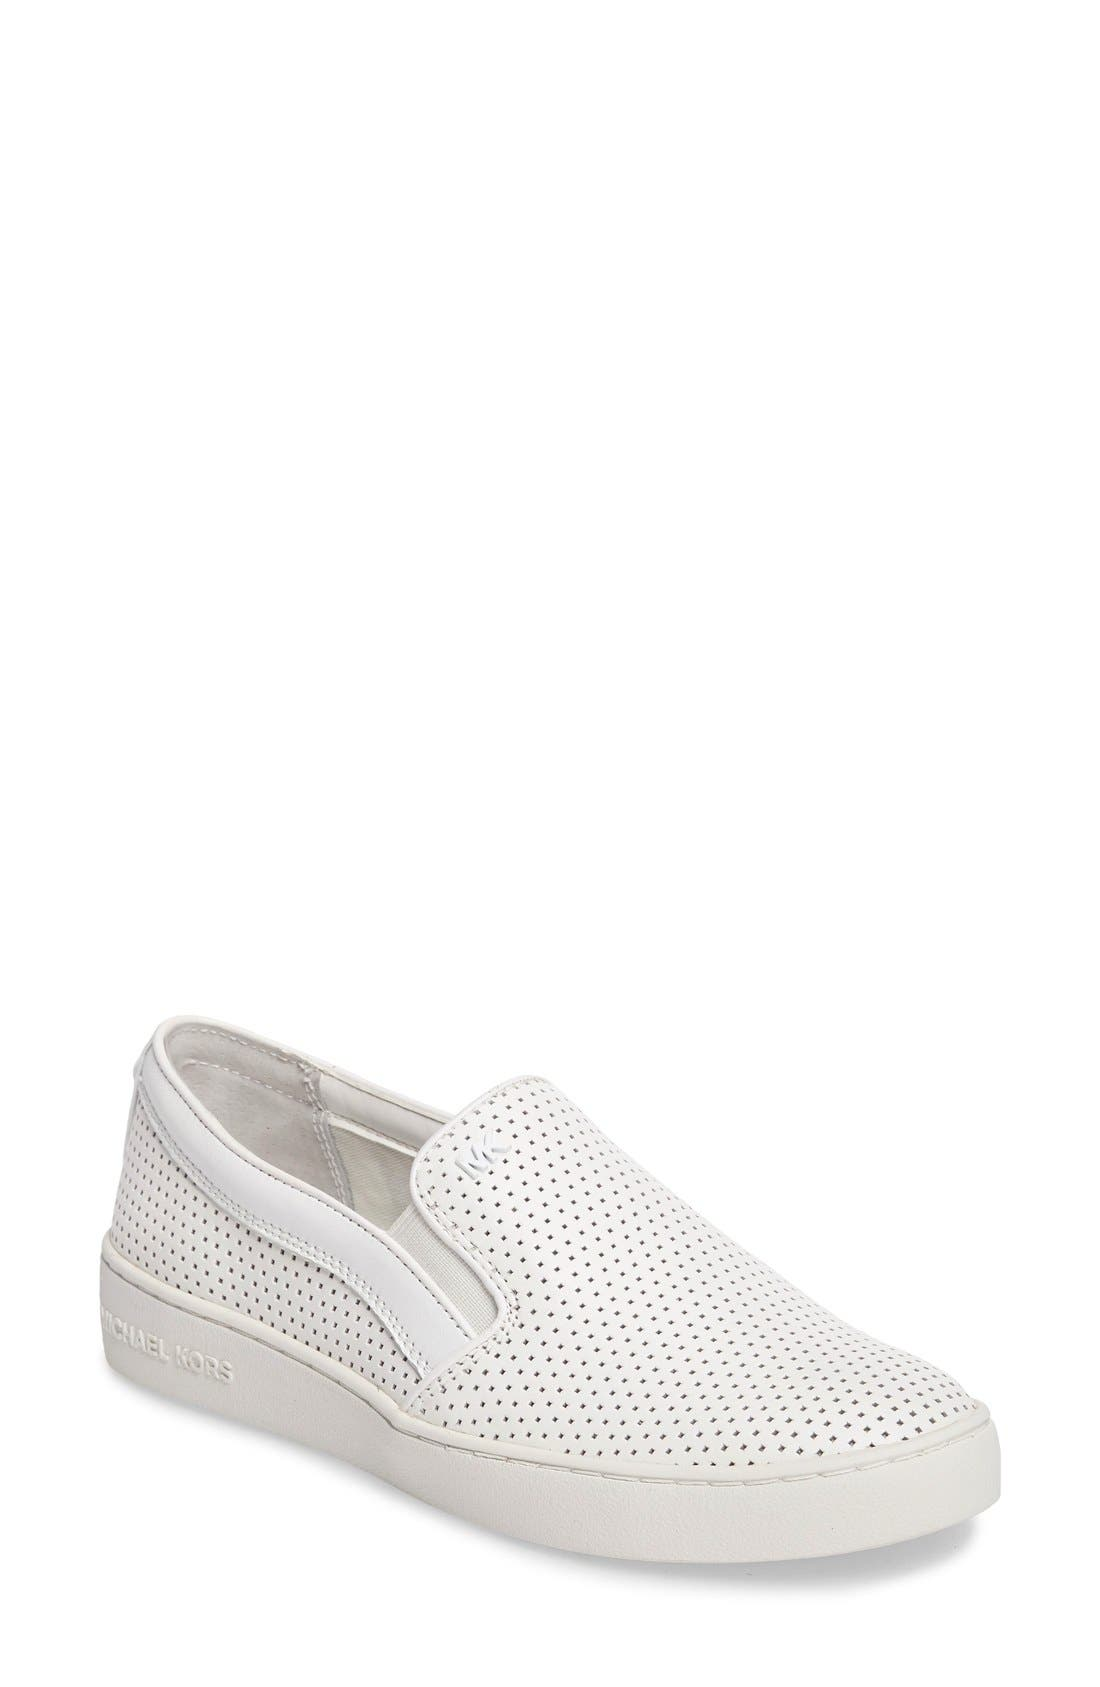 Keaton Slip-On Sneaker,                             Main thumbnail 31, color,